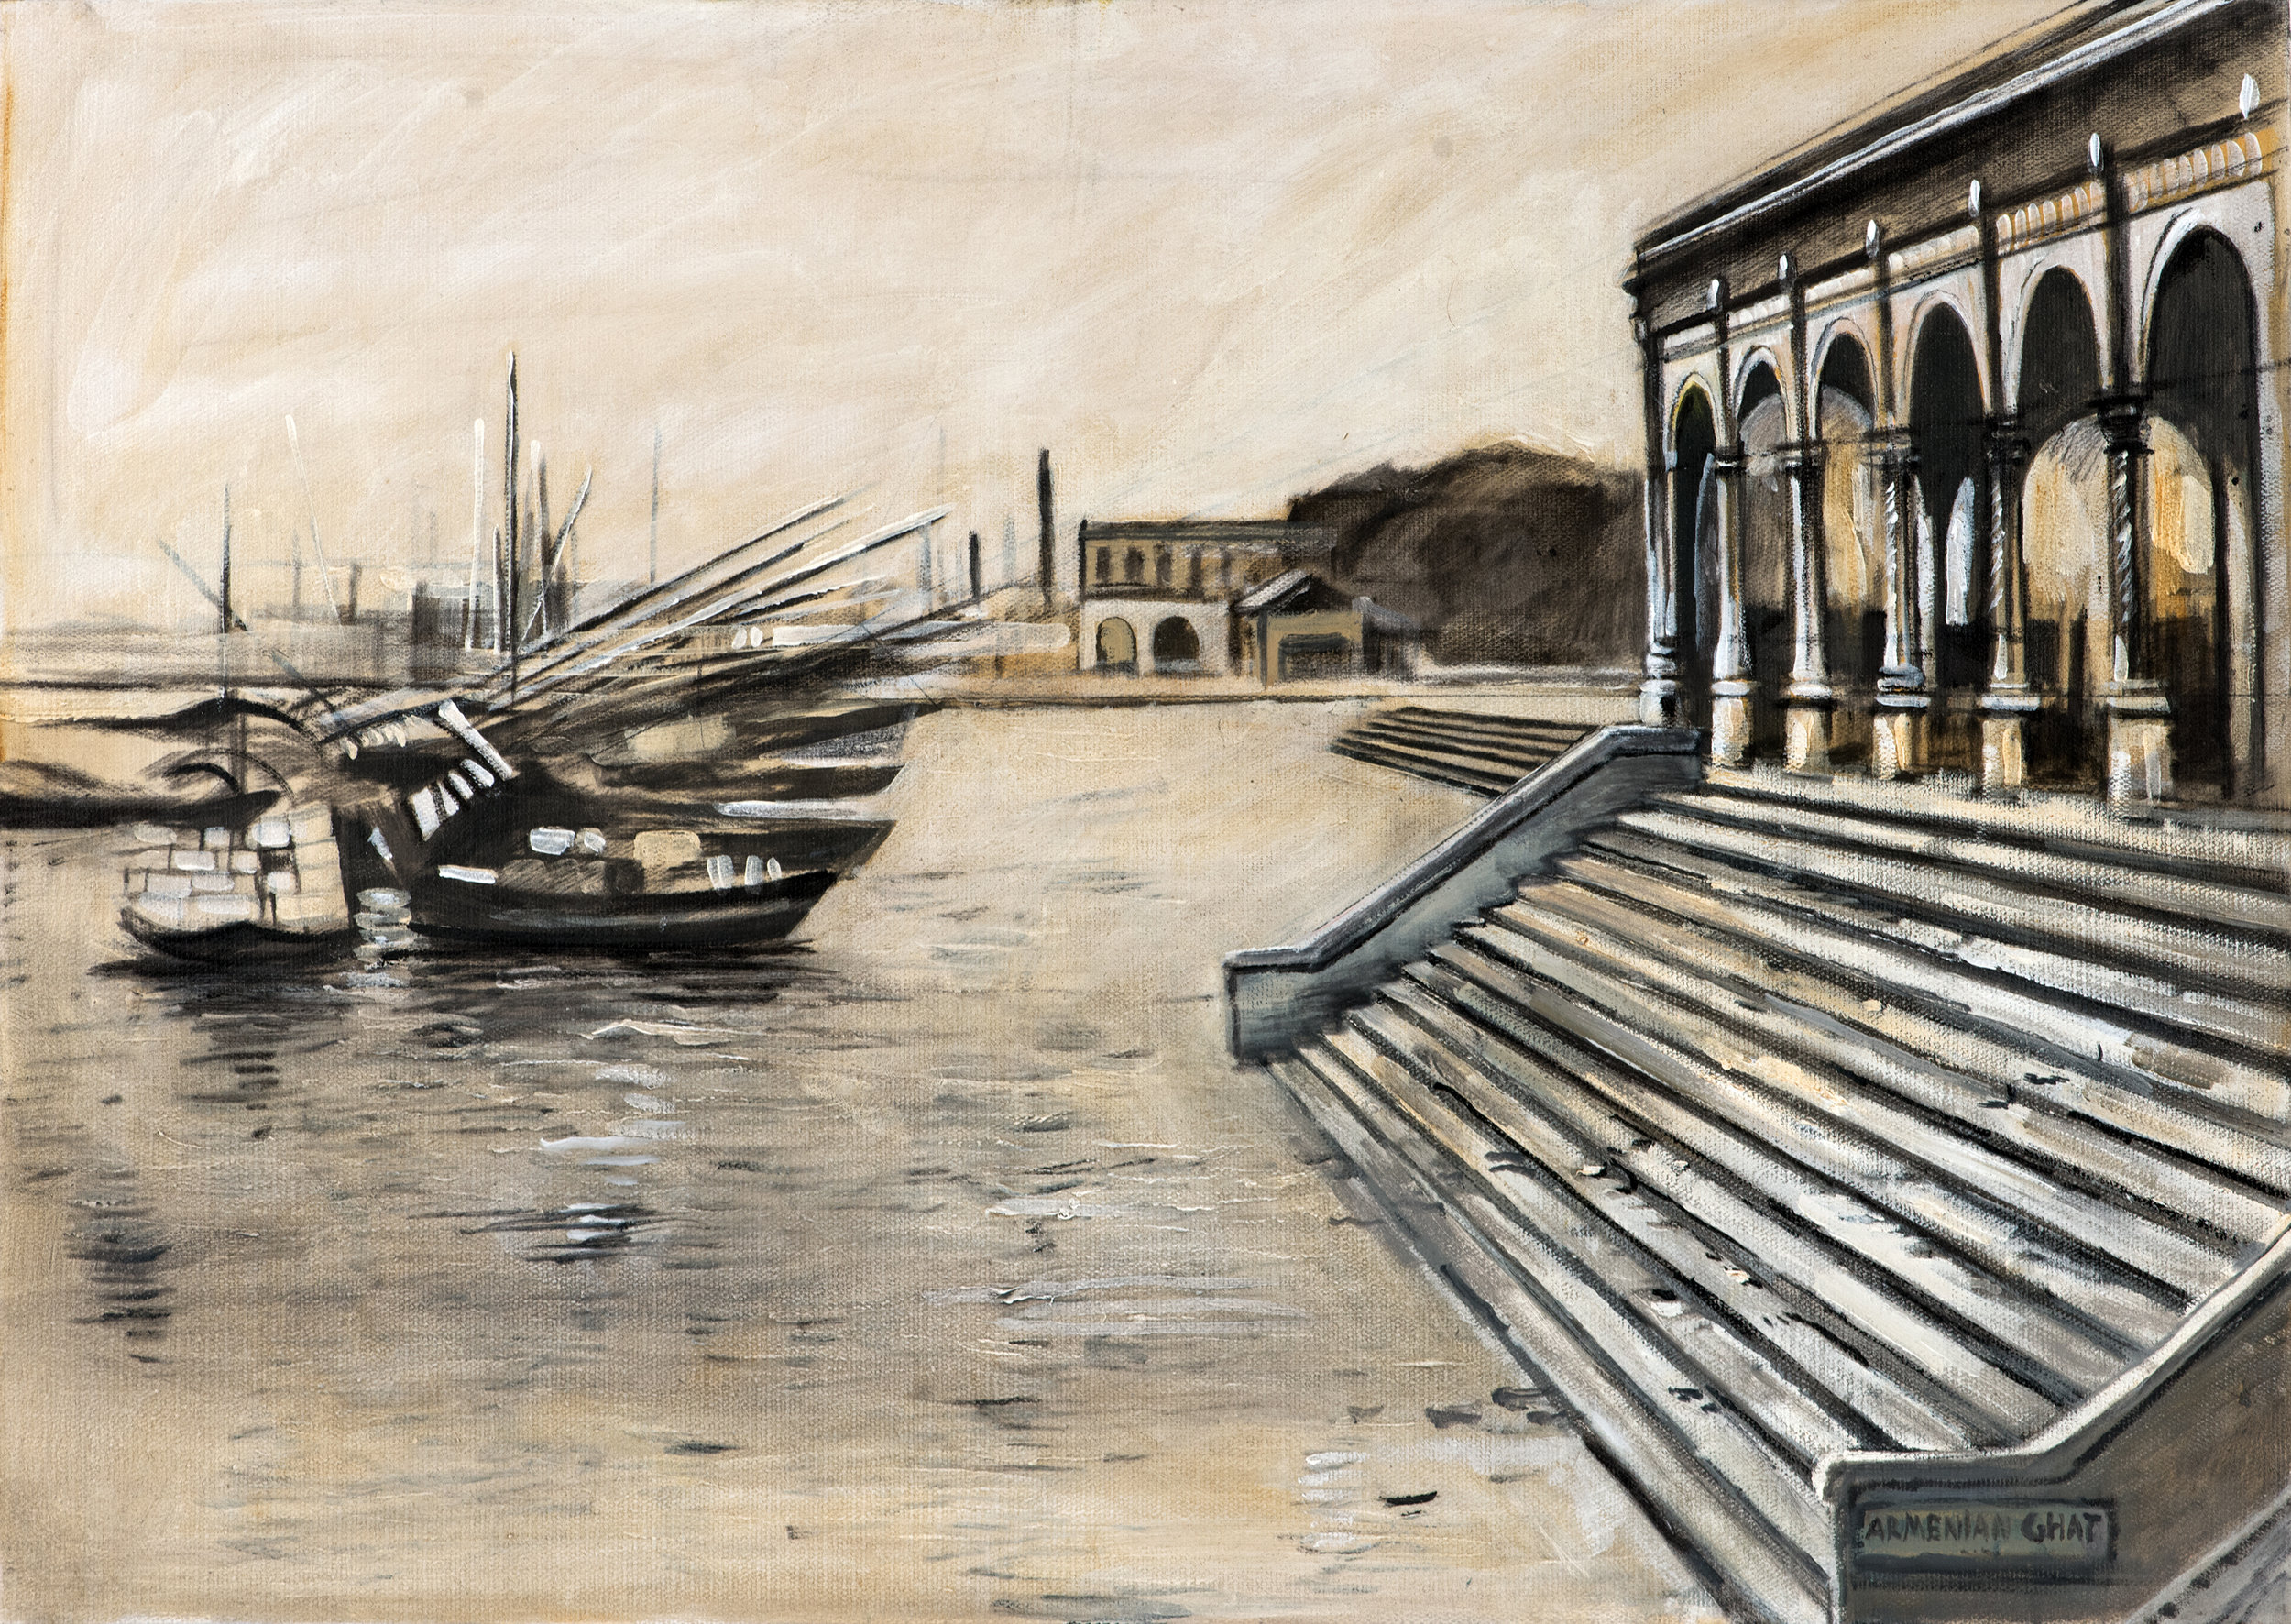 Armenian Ghat, Calcutta , Ararat Sarkissian,2018, oil on canvas, 65 x 46 cm   The Armenians were established in Bengal in 1646. After the foundation of Calcutta, the Armenians settled here, and in 1707, founded the Armenian Church of the Holy Nazareth. Now there are three Armenian churches in the city. In 1821 the Armenian Humanitarian Seminary was founded in Calcutta, which still functions.It played a major role in the education of the Armenians. Among the Armenian communities in India, Calcutta became the largest, and a small Armenian community exists today.  As in many cities where Armenians settled, there is an Armenian Street. The Armenian presence in Calcutta was very obvious in the early twentieth century. Edifices including Galstaun Park (now the Nizam Palace), Galstaun Mansion, Stephens Court, Park Mansions and the Grand Hotel (now the Oberoi Grand) reflected the wealth of individuals from Isfahan such as J.C. Galstaun, Arathoon Stephen and T. M. Thaddeus.  The Armenian Ghat is of special mention, built by Manvel Hazaar Maliyan in 1734. This elegant construction made of cast iron stands on the Hoogley River bank, in vicinity of the flower market. It maintained its significance until the construction of a bridge over the river in 1874. Unfortunately, this magnificent building is now almost forgotten.